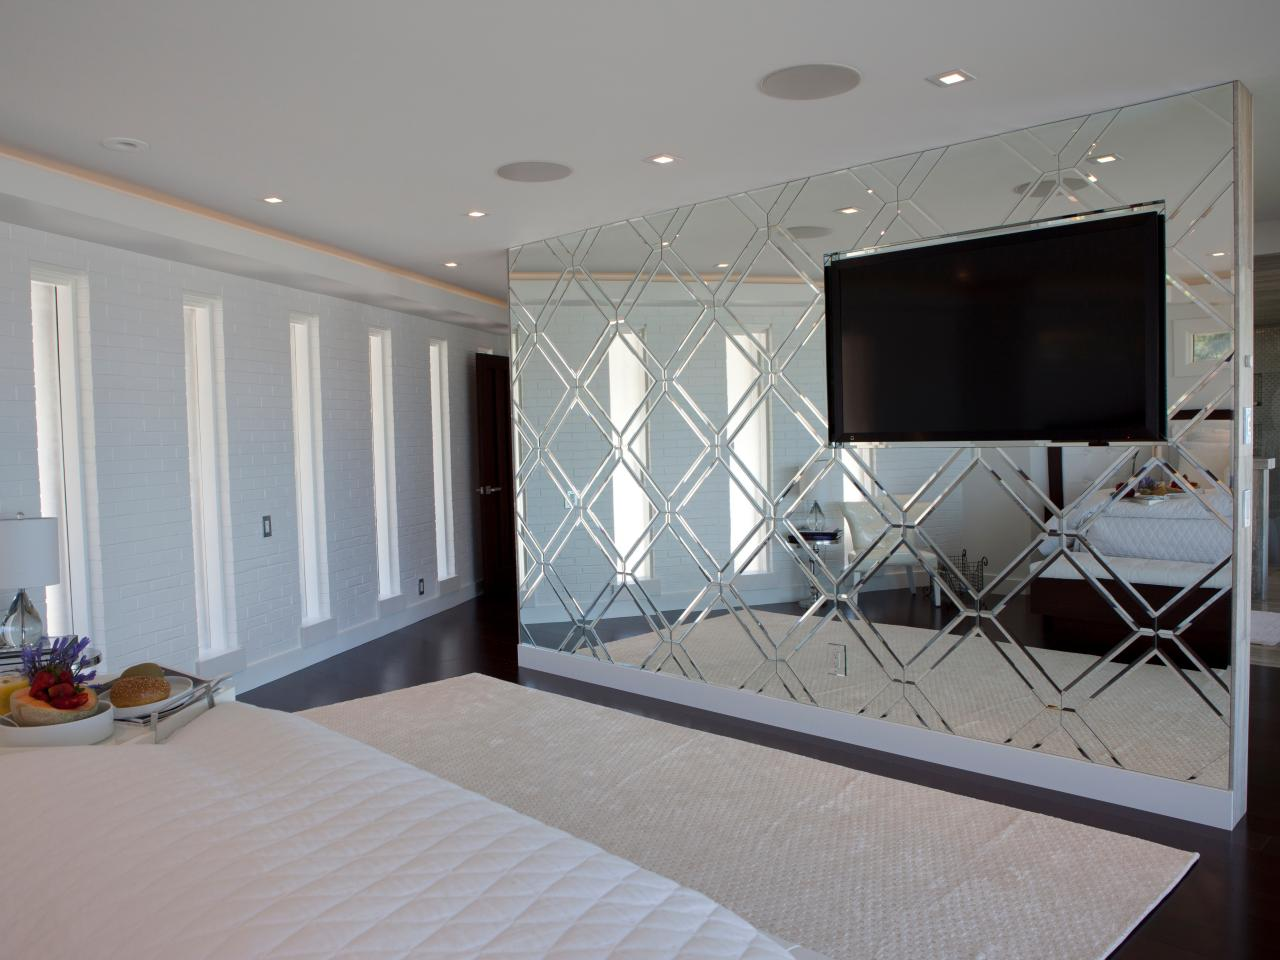 Stylish mirror wall full image for wall to wall mirrors 109 outstanding for simple ideas xsflilt